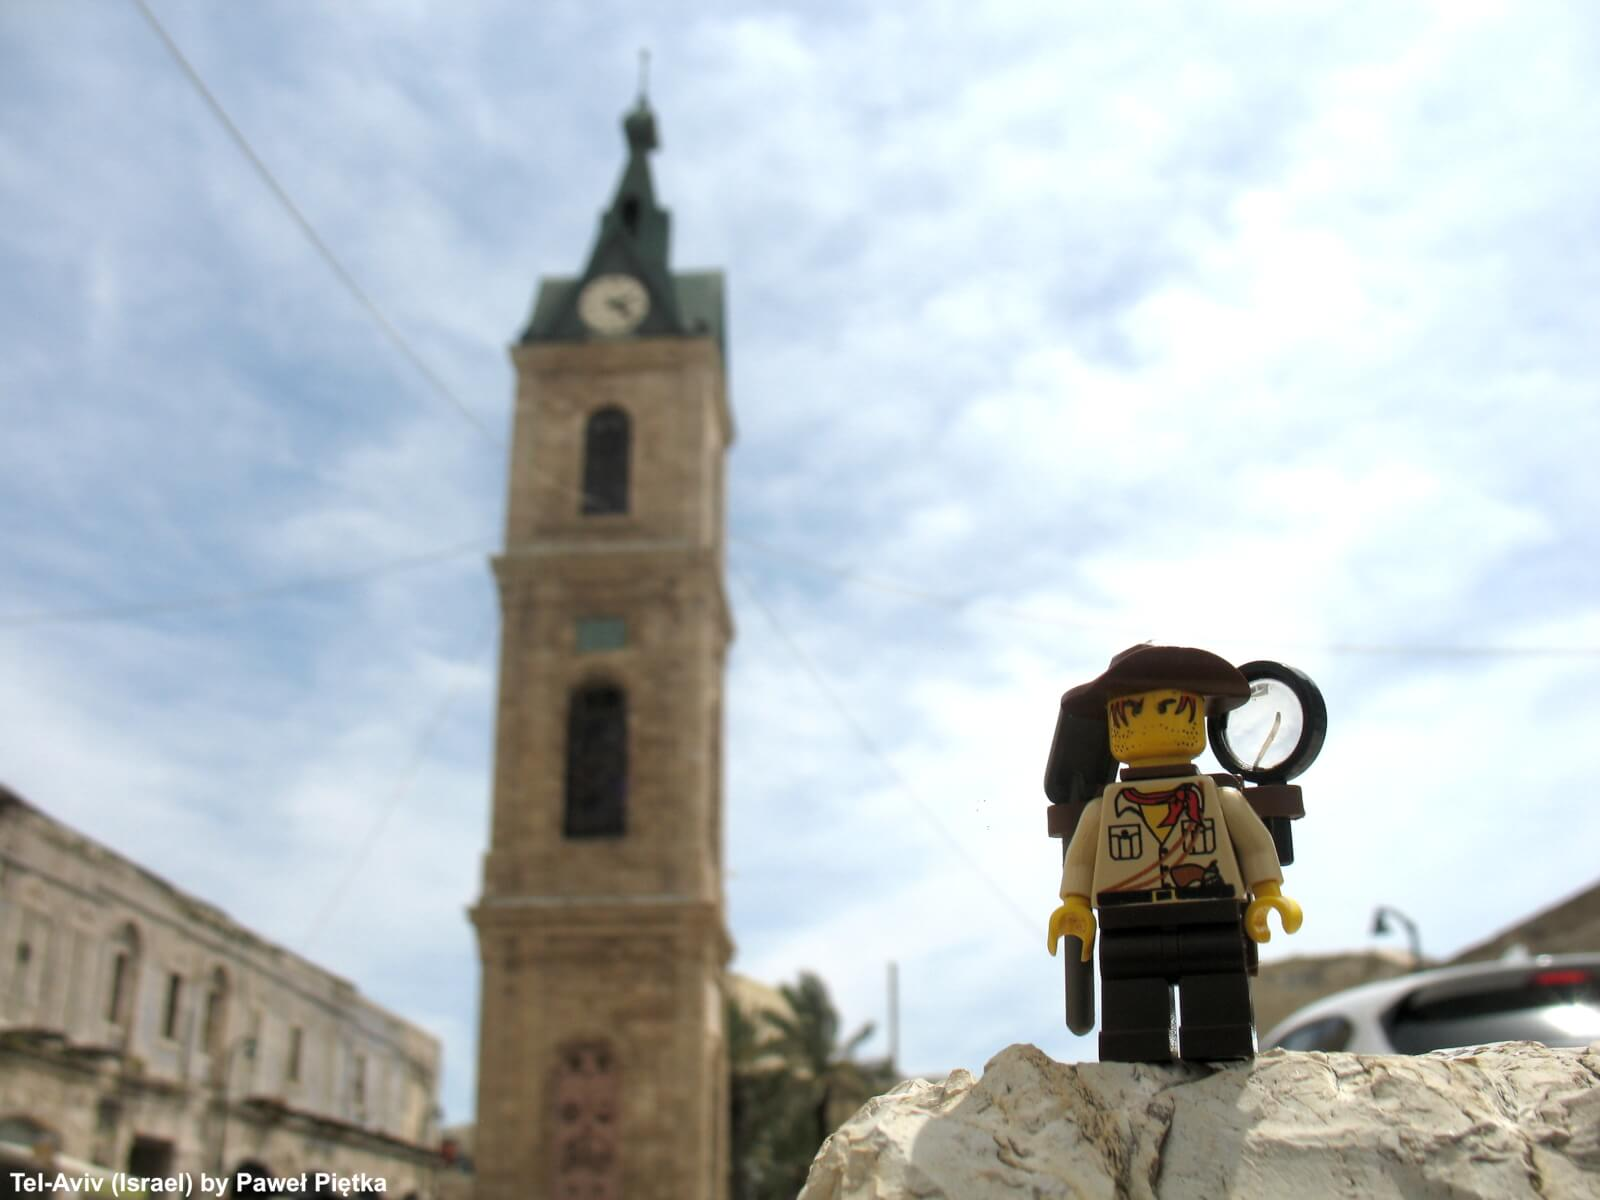 Tel-Aviv (Israel) - Jaffa Clock Tower